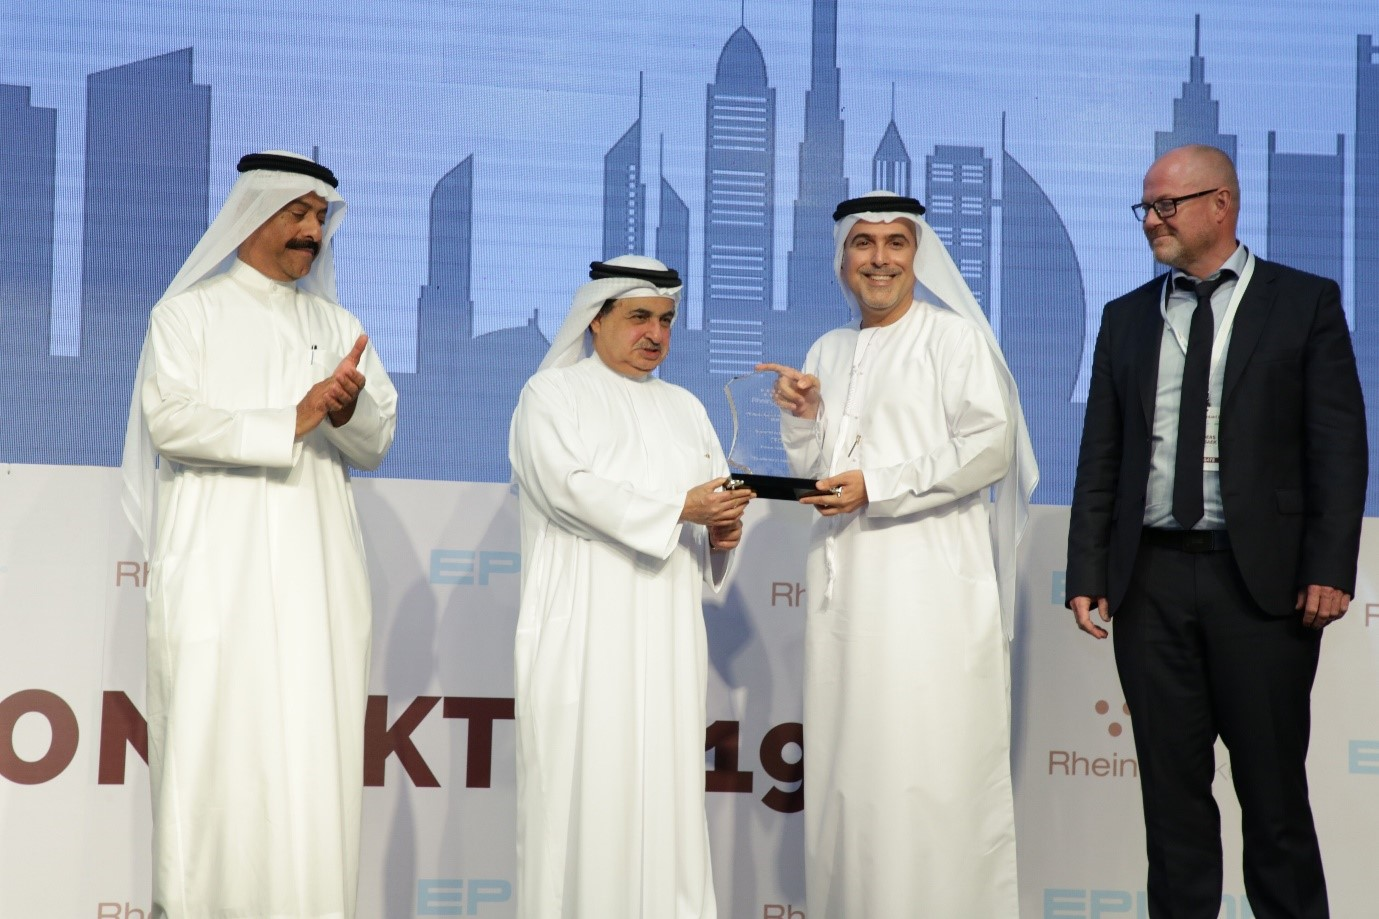 His Excellency Muammar Al Rukhaimi  for Excellence in Technology